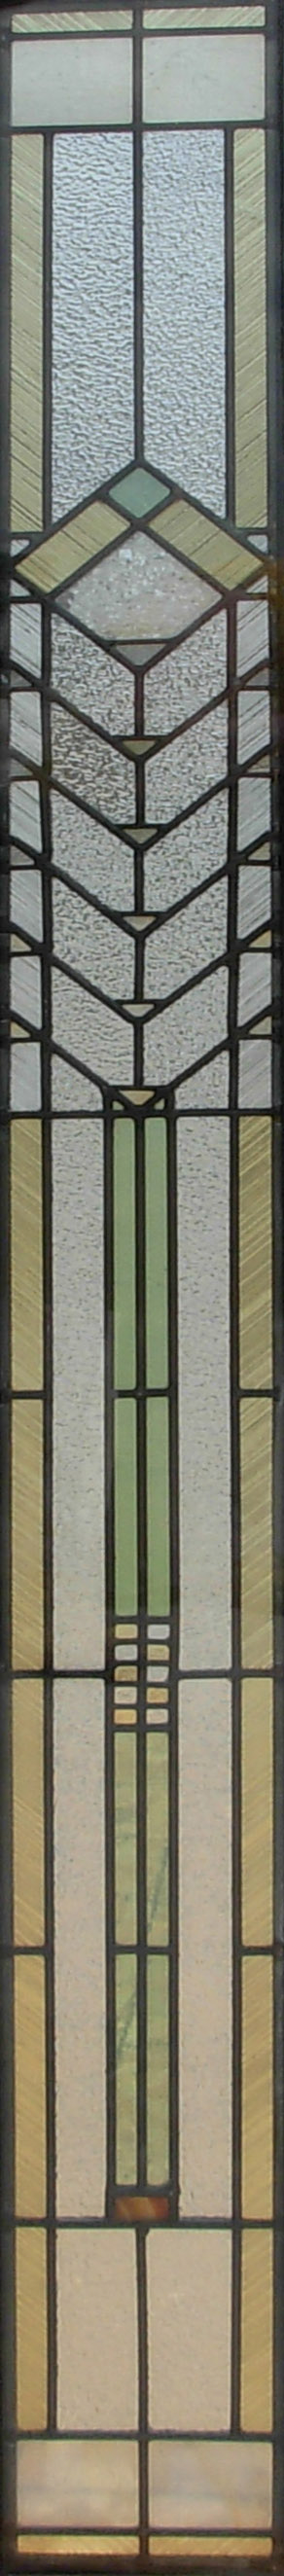 Holdman_Studios_Stained_Art_Glass_LDS_Mormon_Temple_Laie_Hawaii_Door_Closeup.jpg